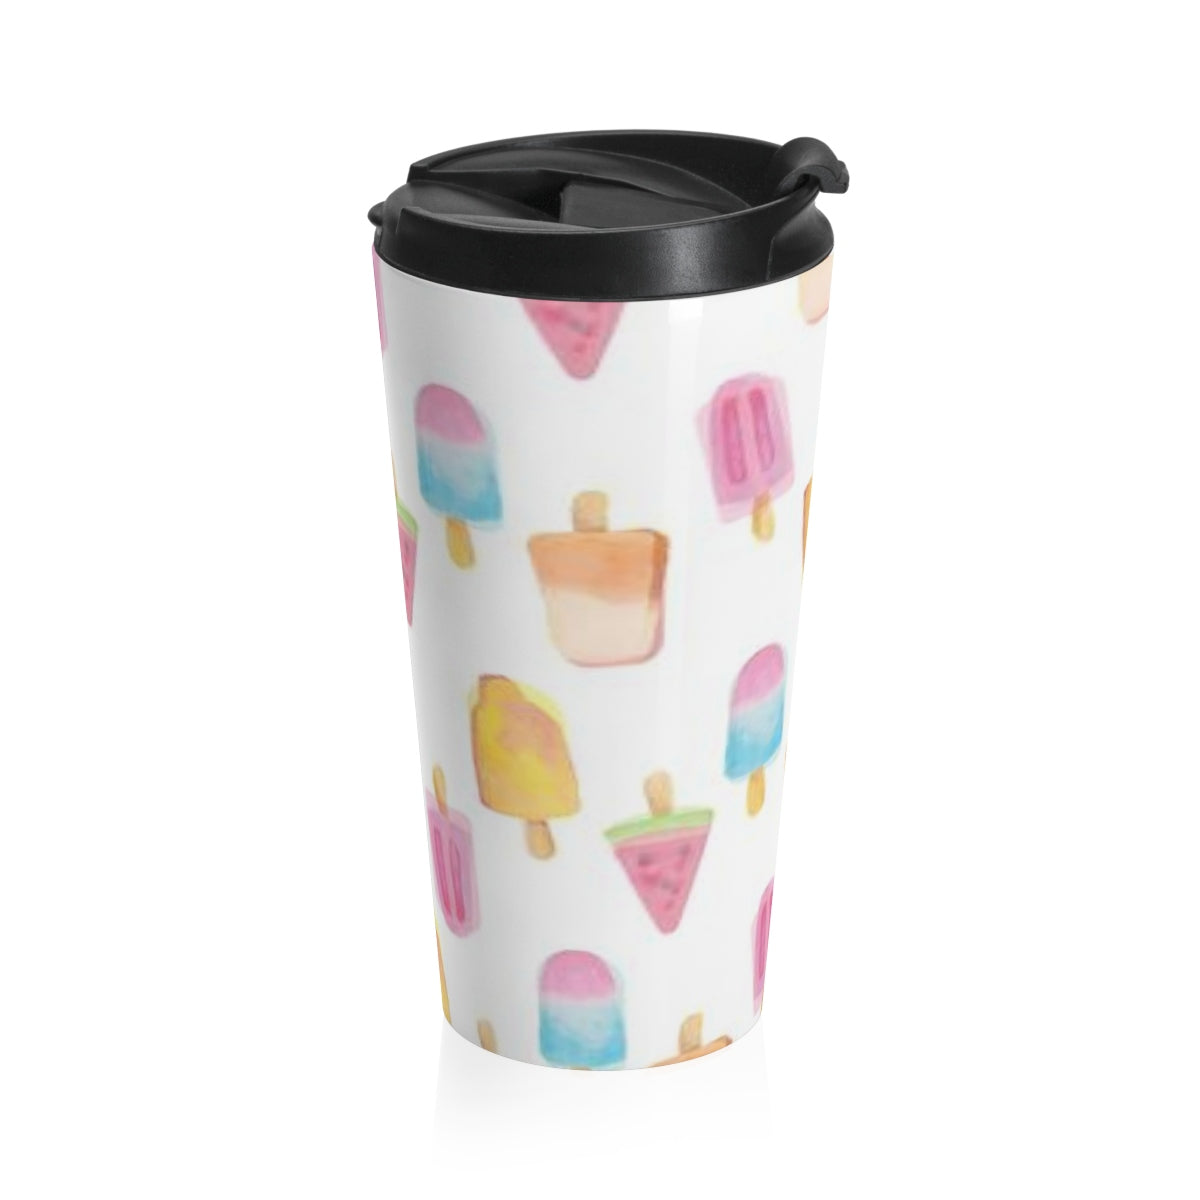 Sweet Summer Stainless Steel Travel Mug